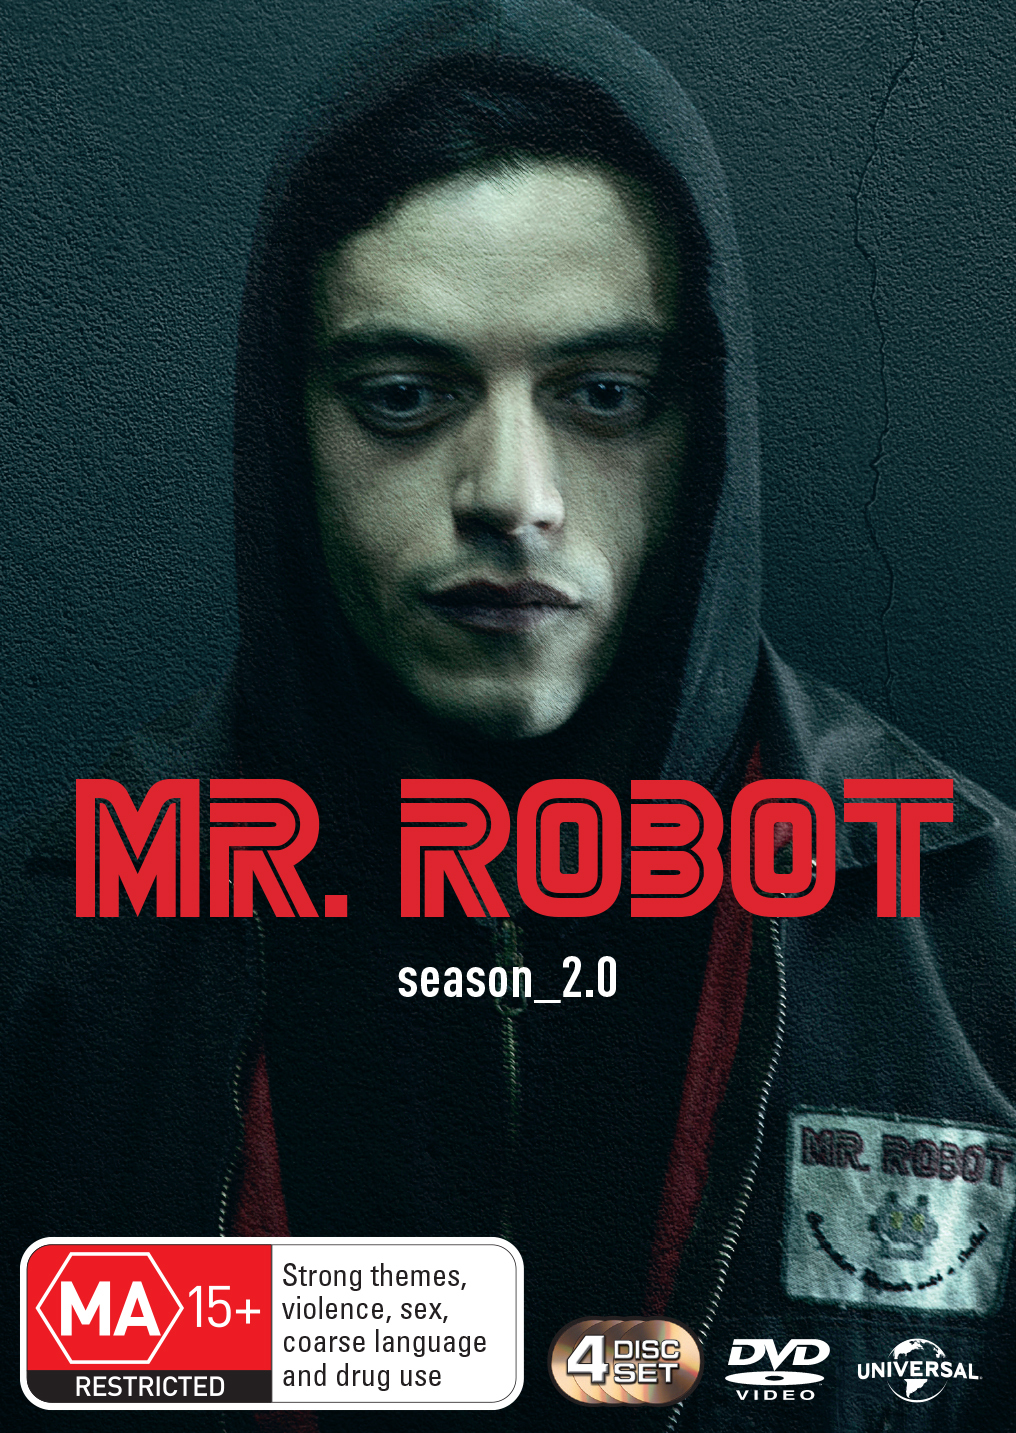 Mr. Robot - Season_2.0 on DVD image